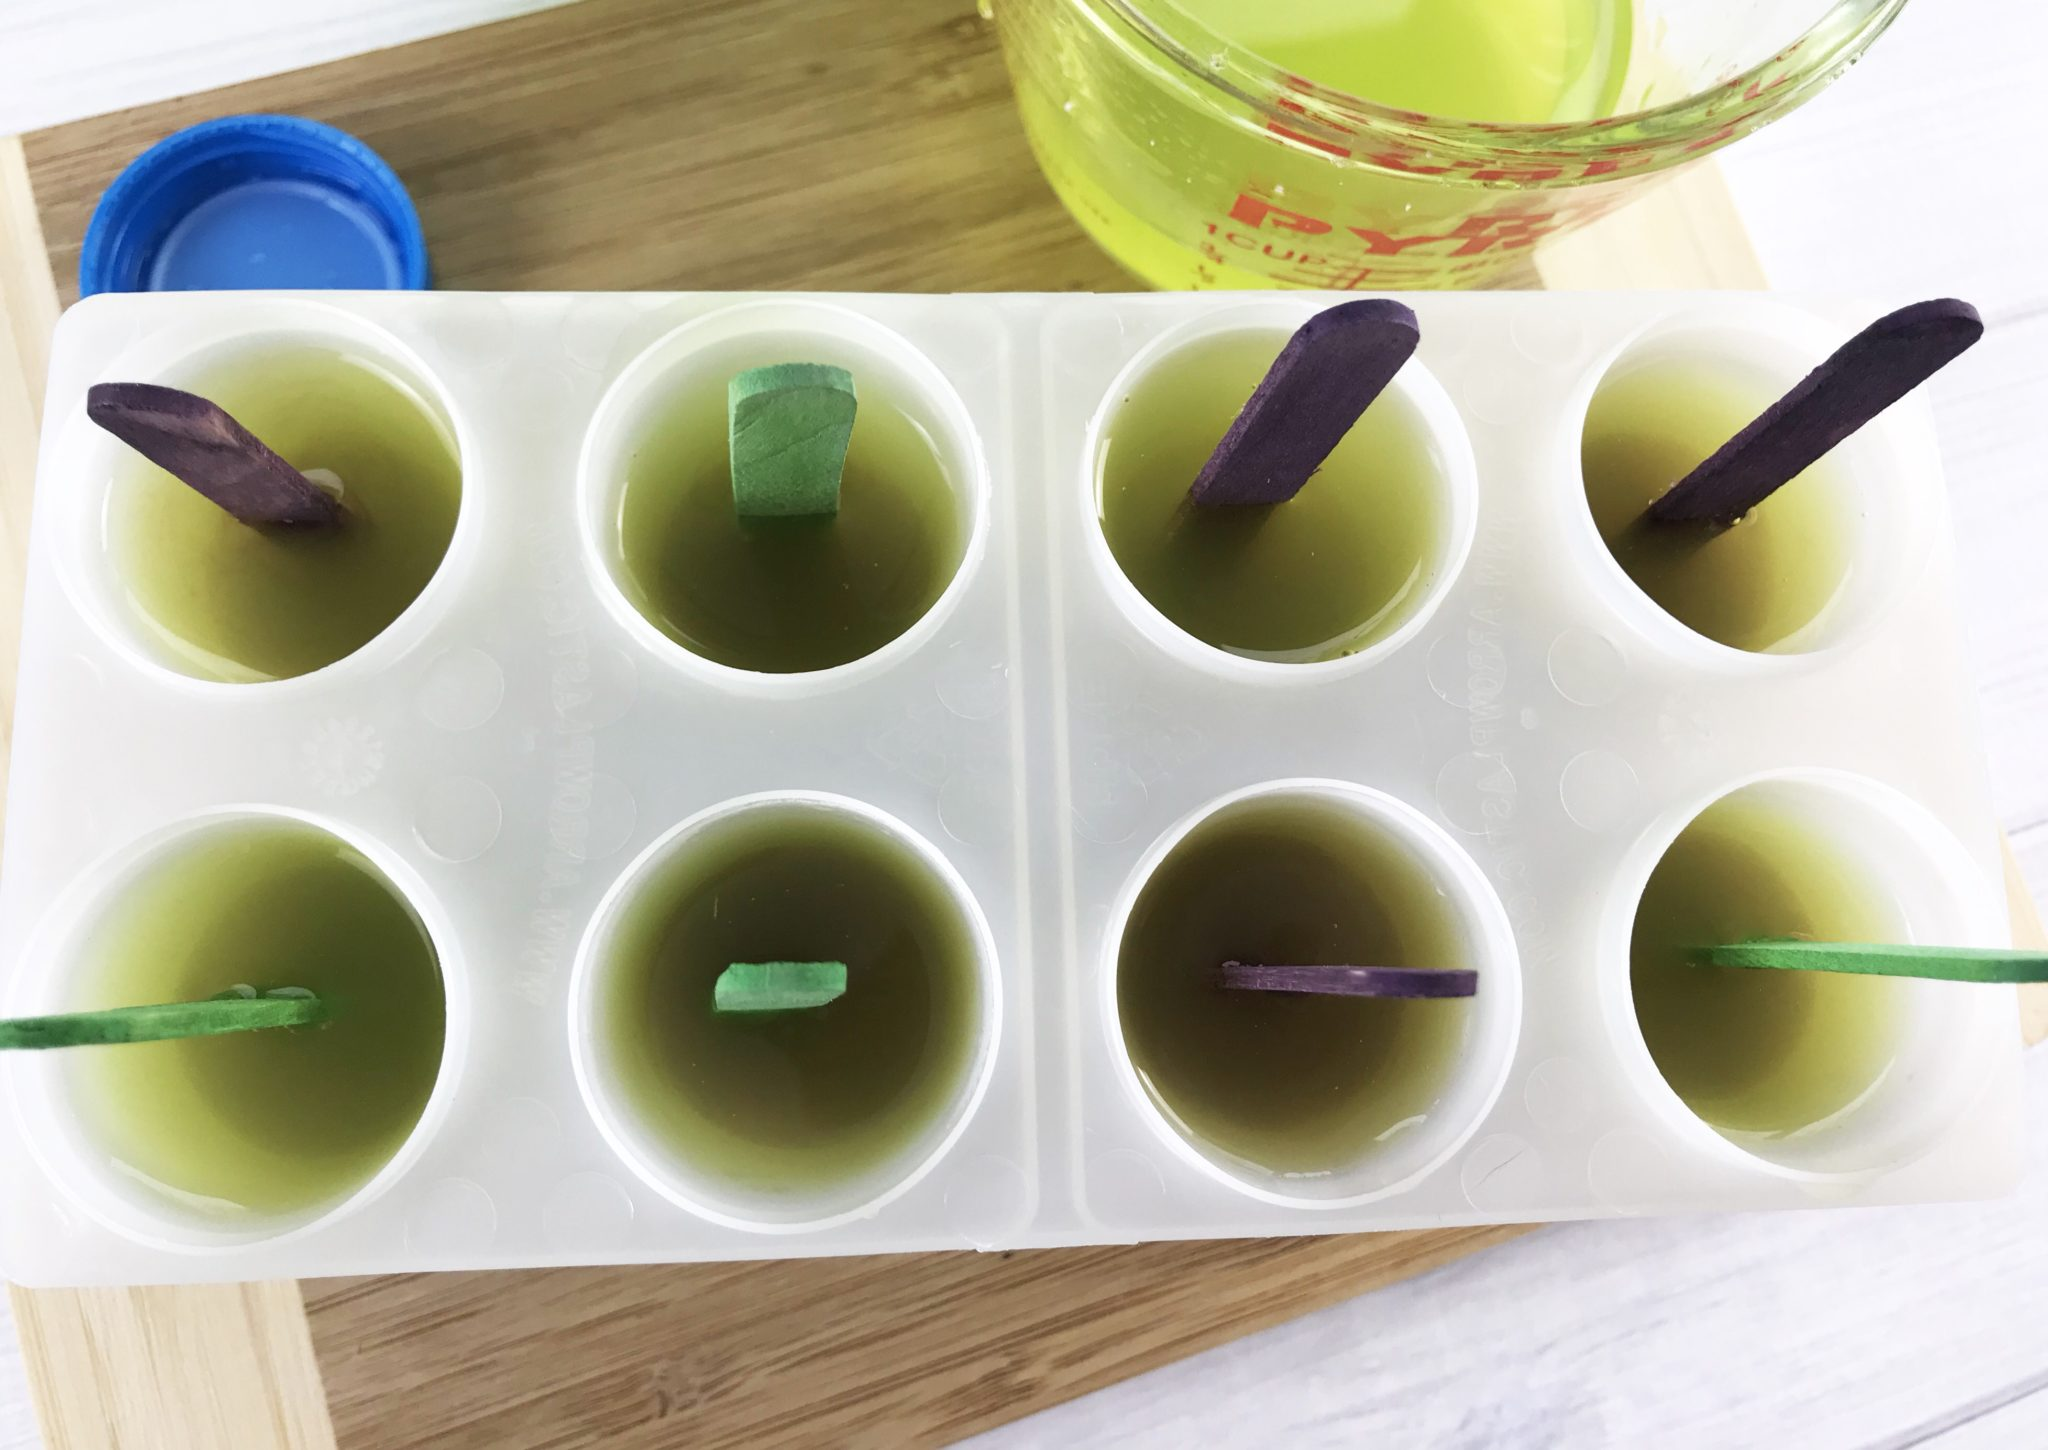 Have a Marvel Superhero fan in your house? Make them some Hulk Ice Pops this summer! They could not be easier to make and what kid doesn't love a frozen treat on a hot day?